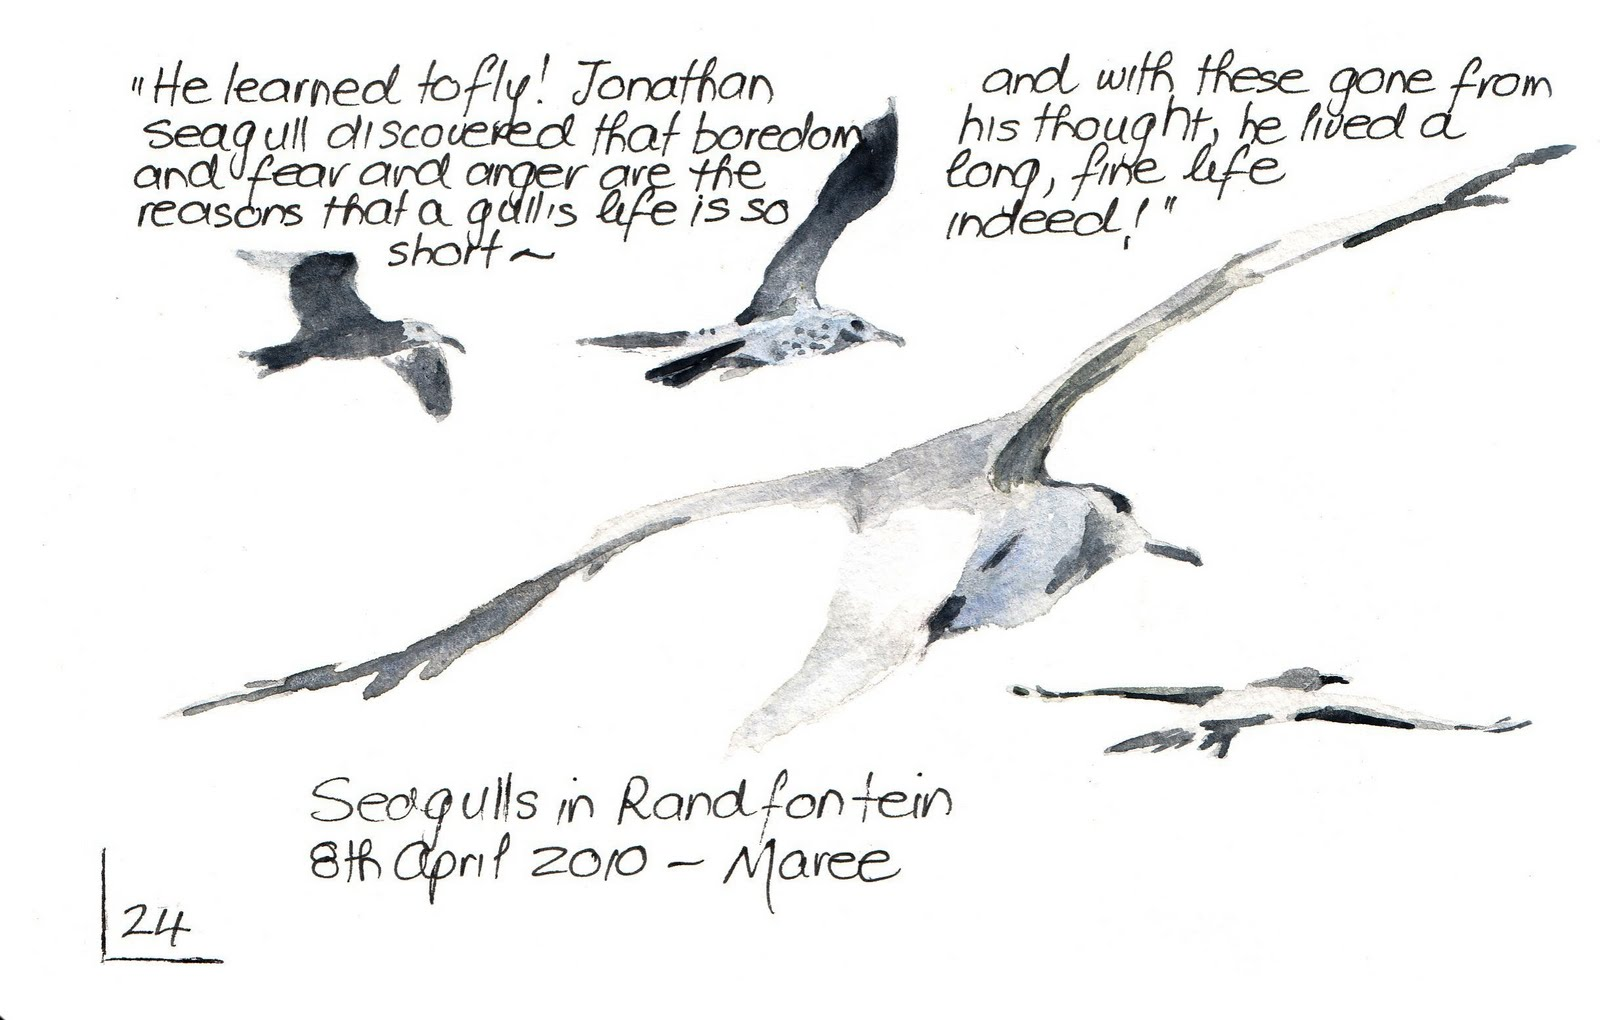 sketching in nature seagulls in randfontein maree